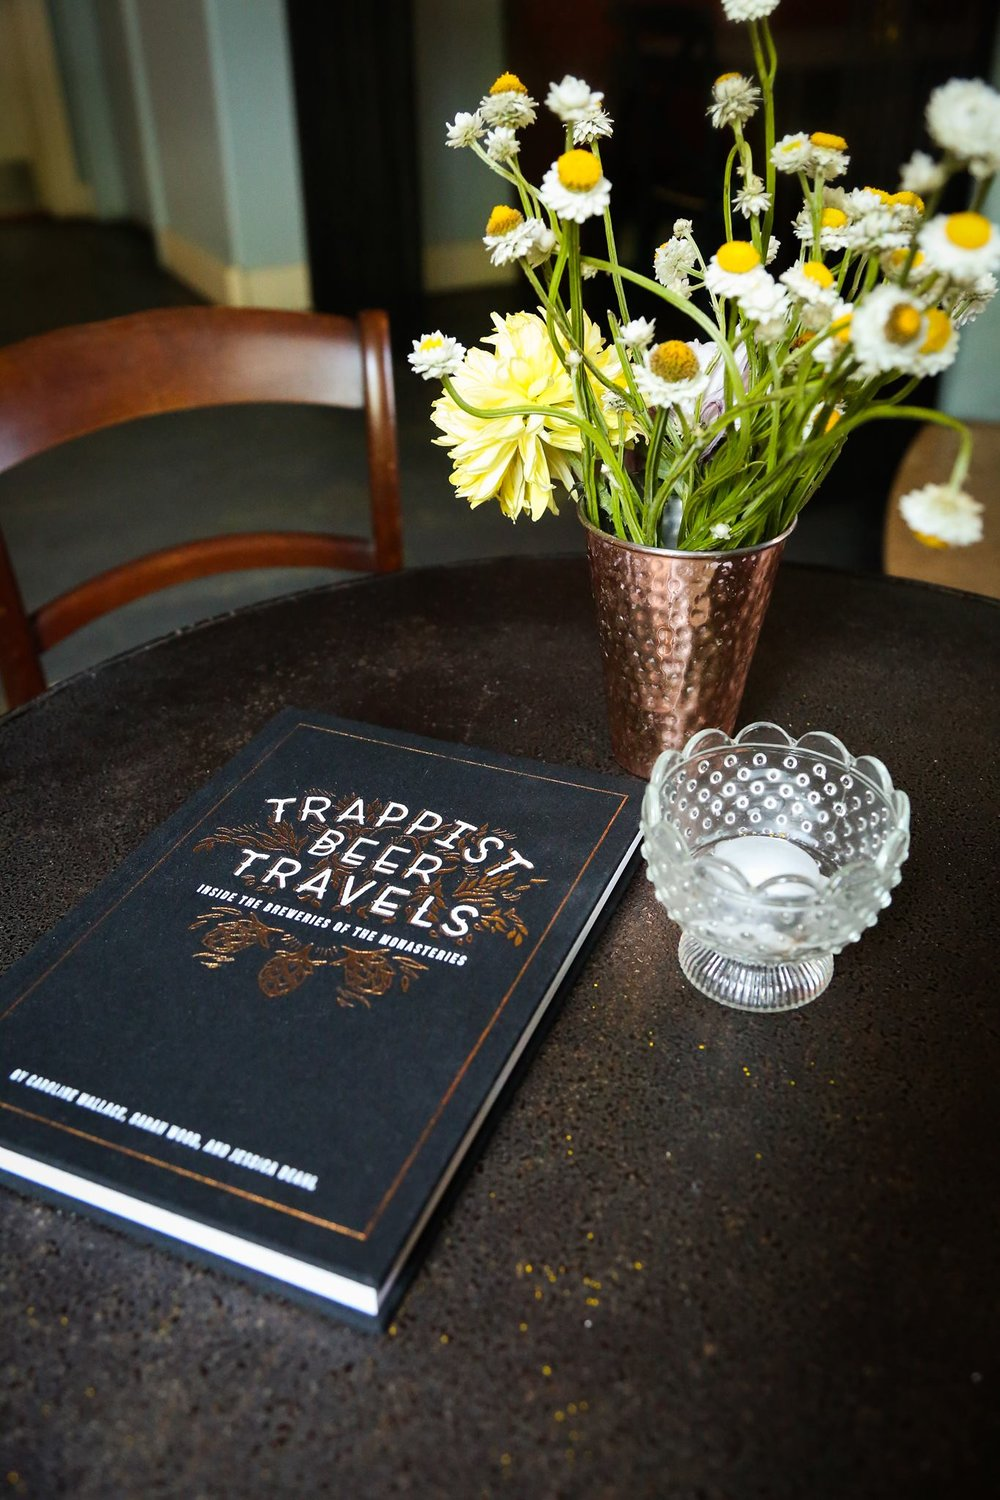 """Trappist Beer Travels,"" which is being released May 28. Photo By: Mason Endres"